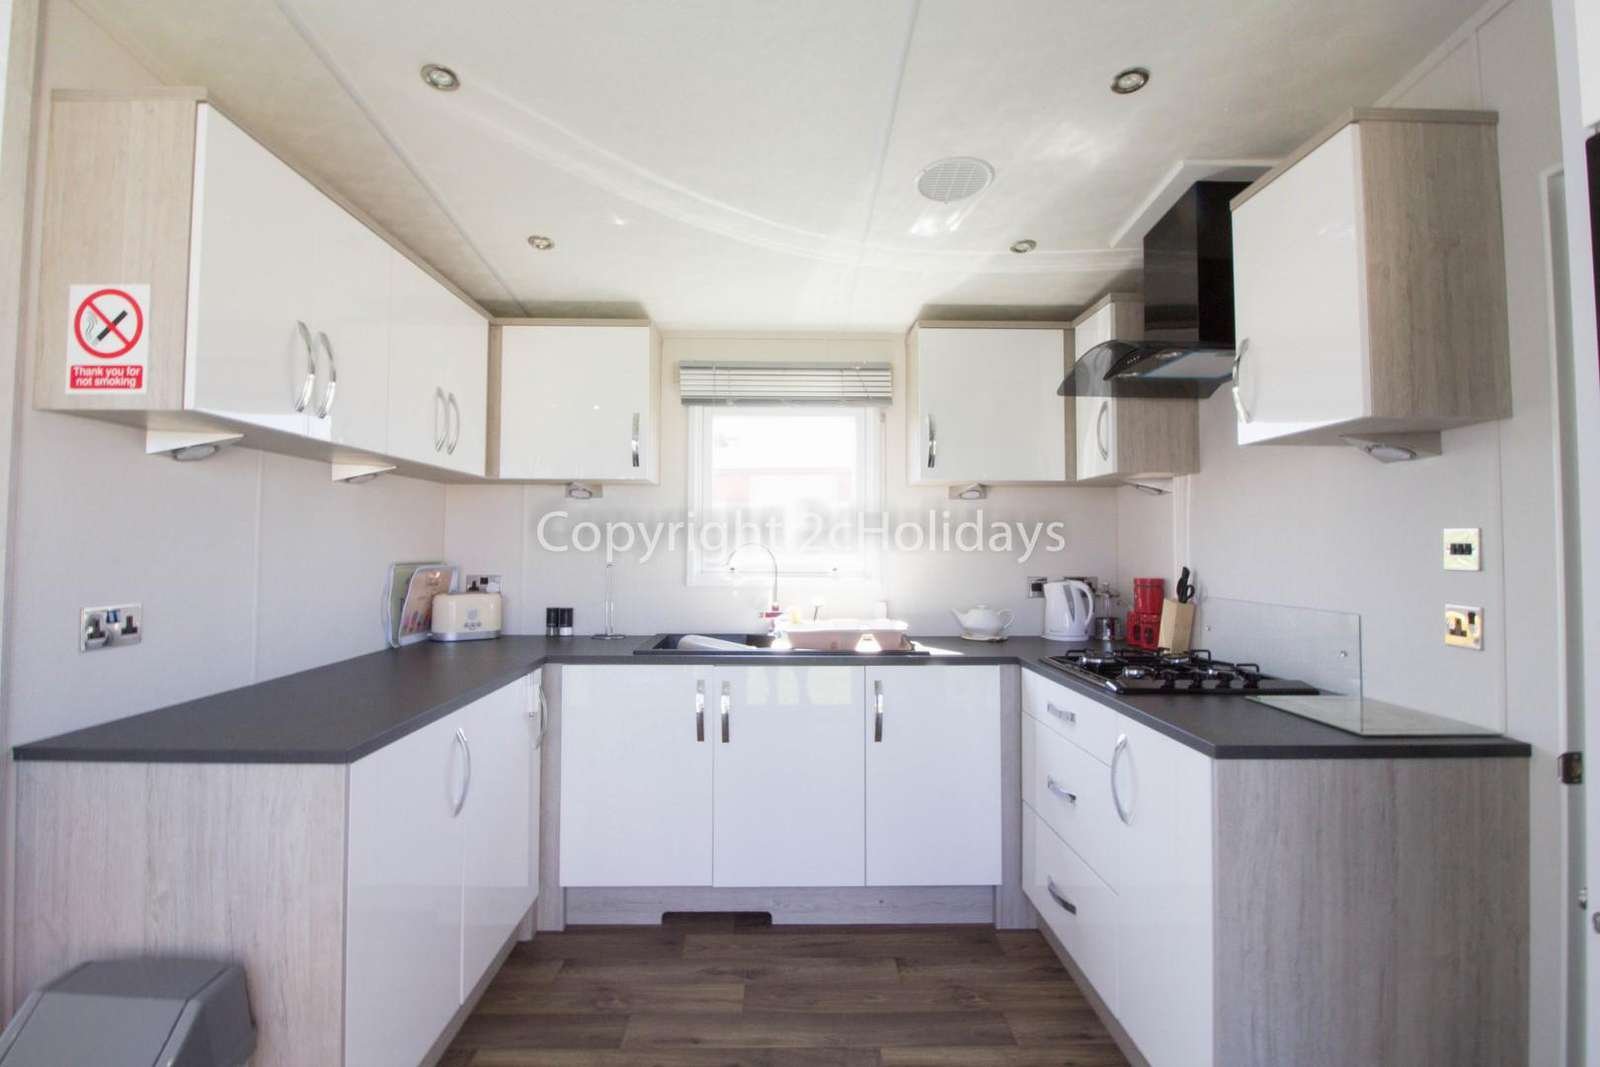 Modern and Stylish kitchen in this static home at the Broadland Sands Holiday Park.